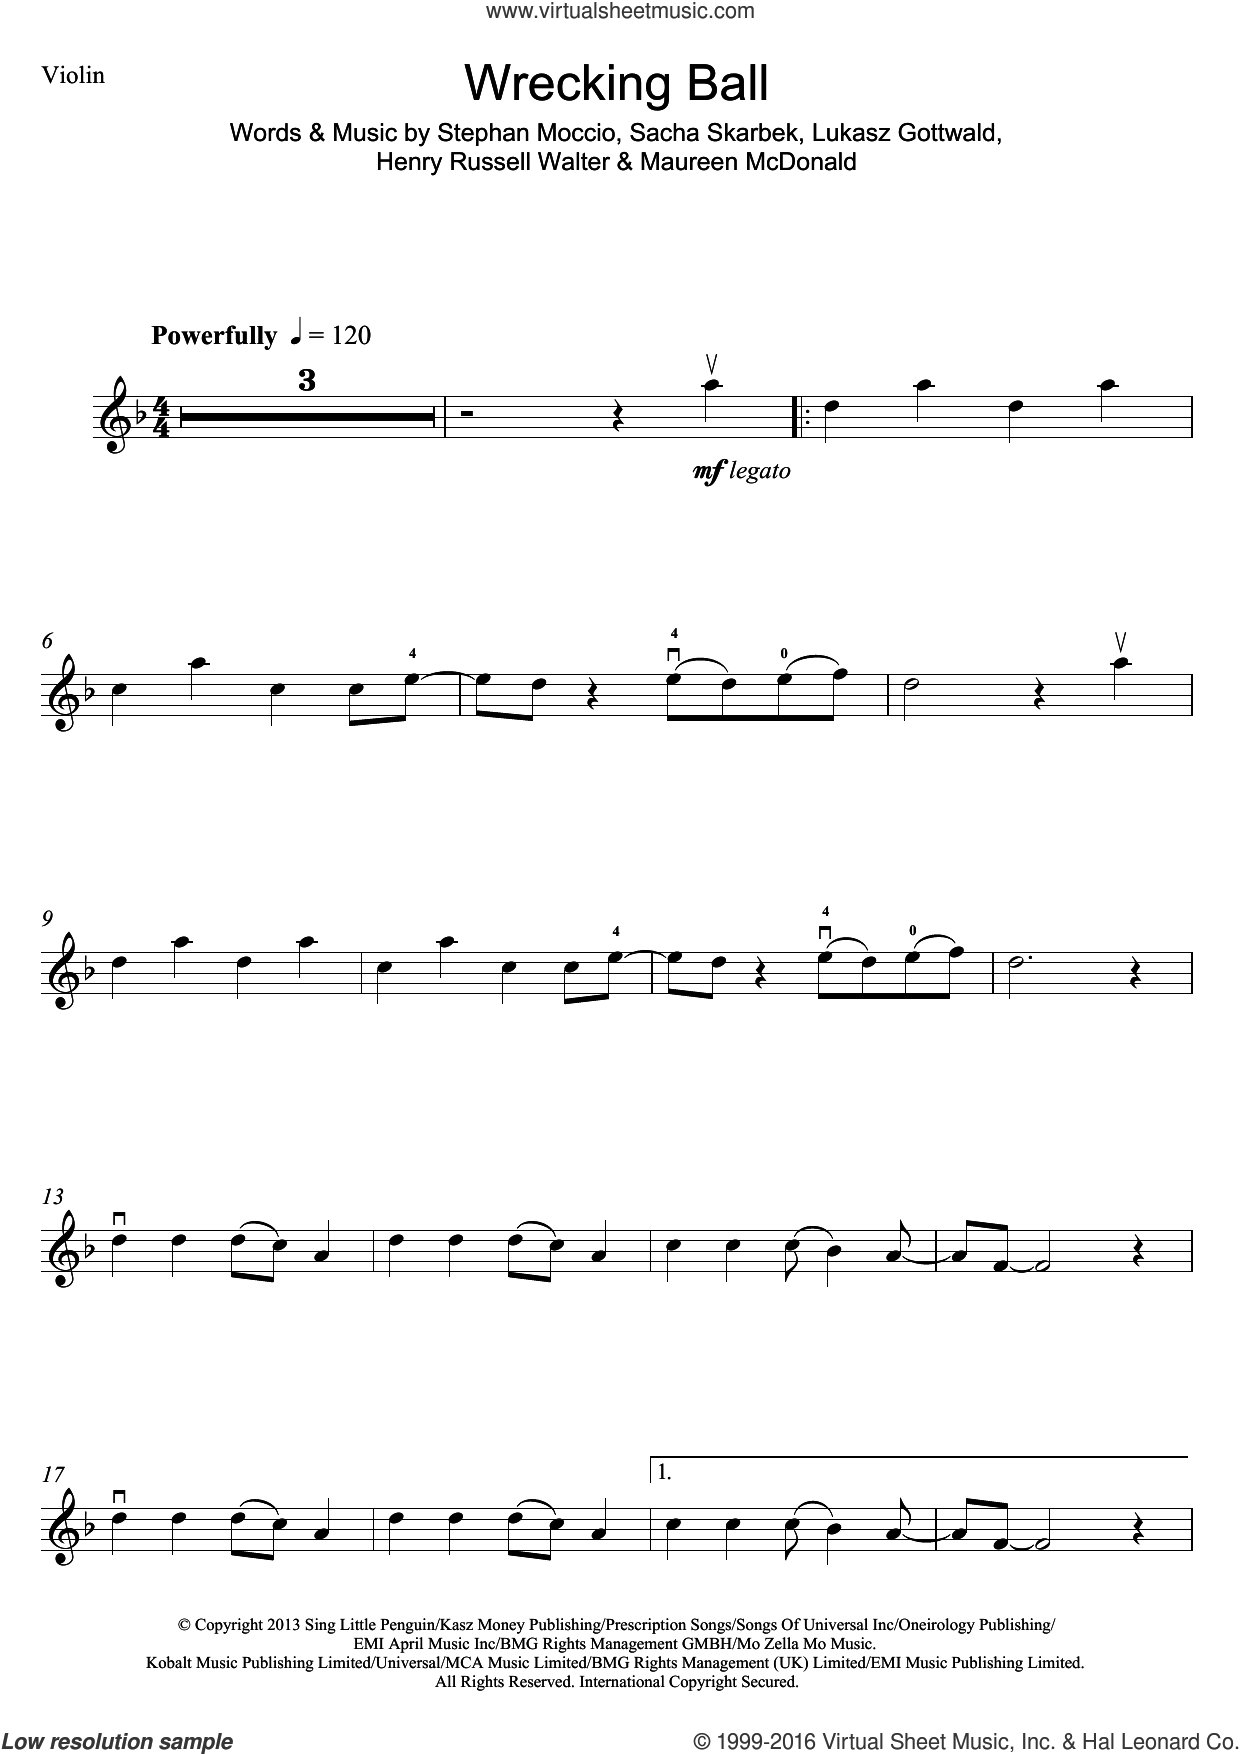 Wrecking Ball sheet music for violin solo by Stephan Moccio, Miley Cyrus, Henry Russell Walter, Lukasz Gottwald, Maureen McDonald and Sacha Skarbek. Score Image Preview.